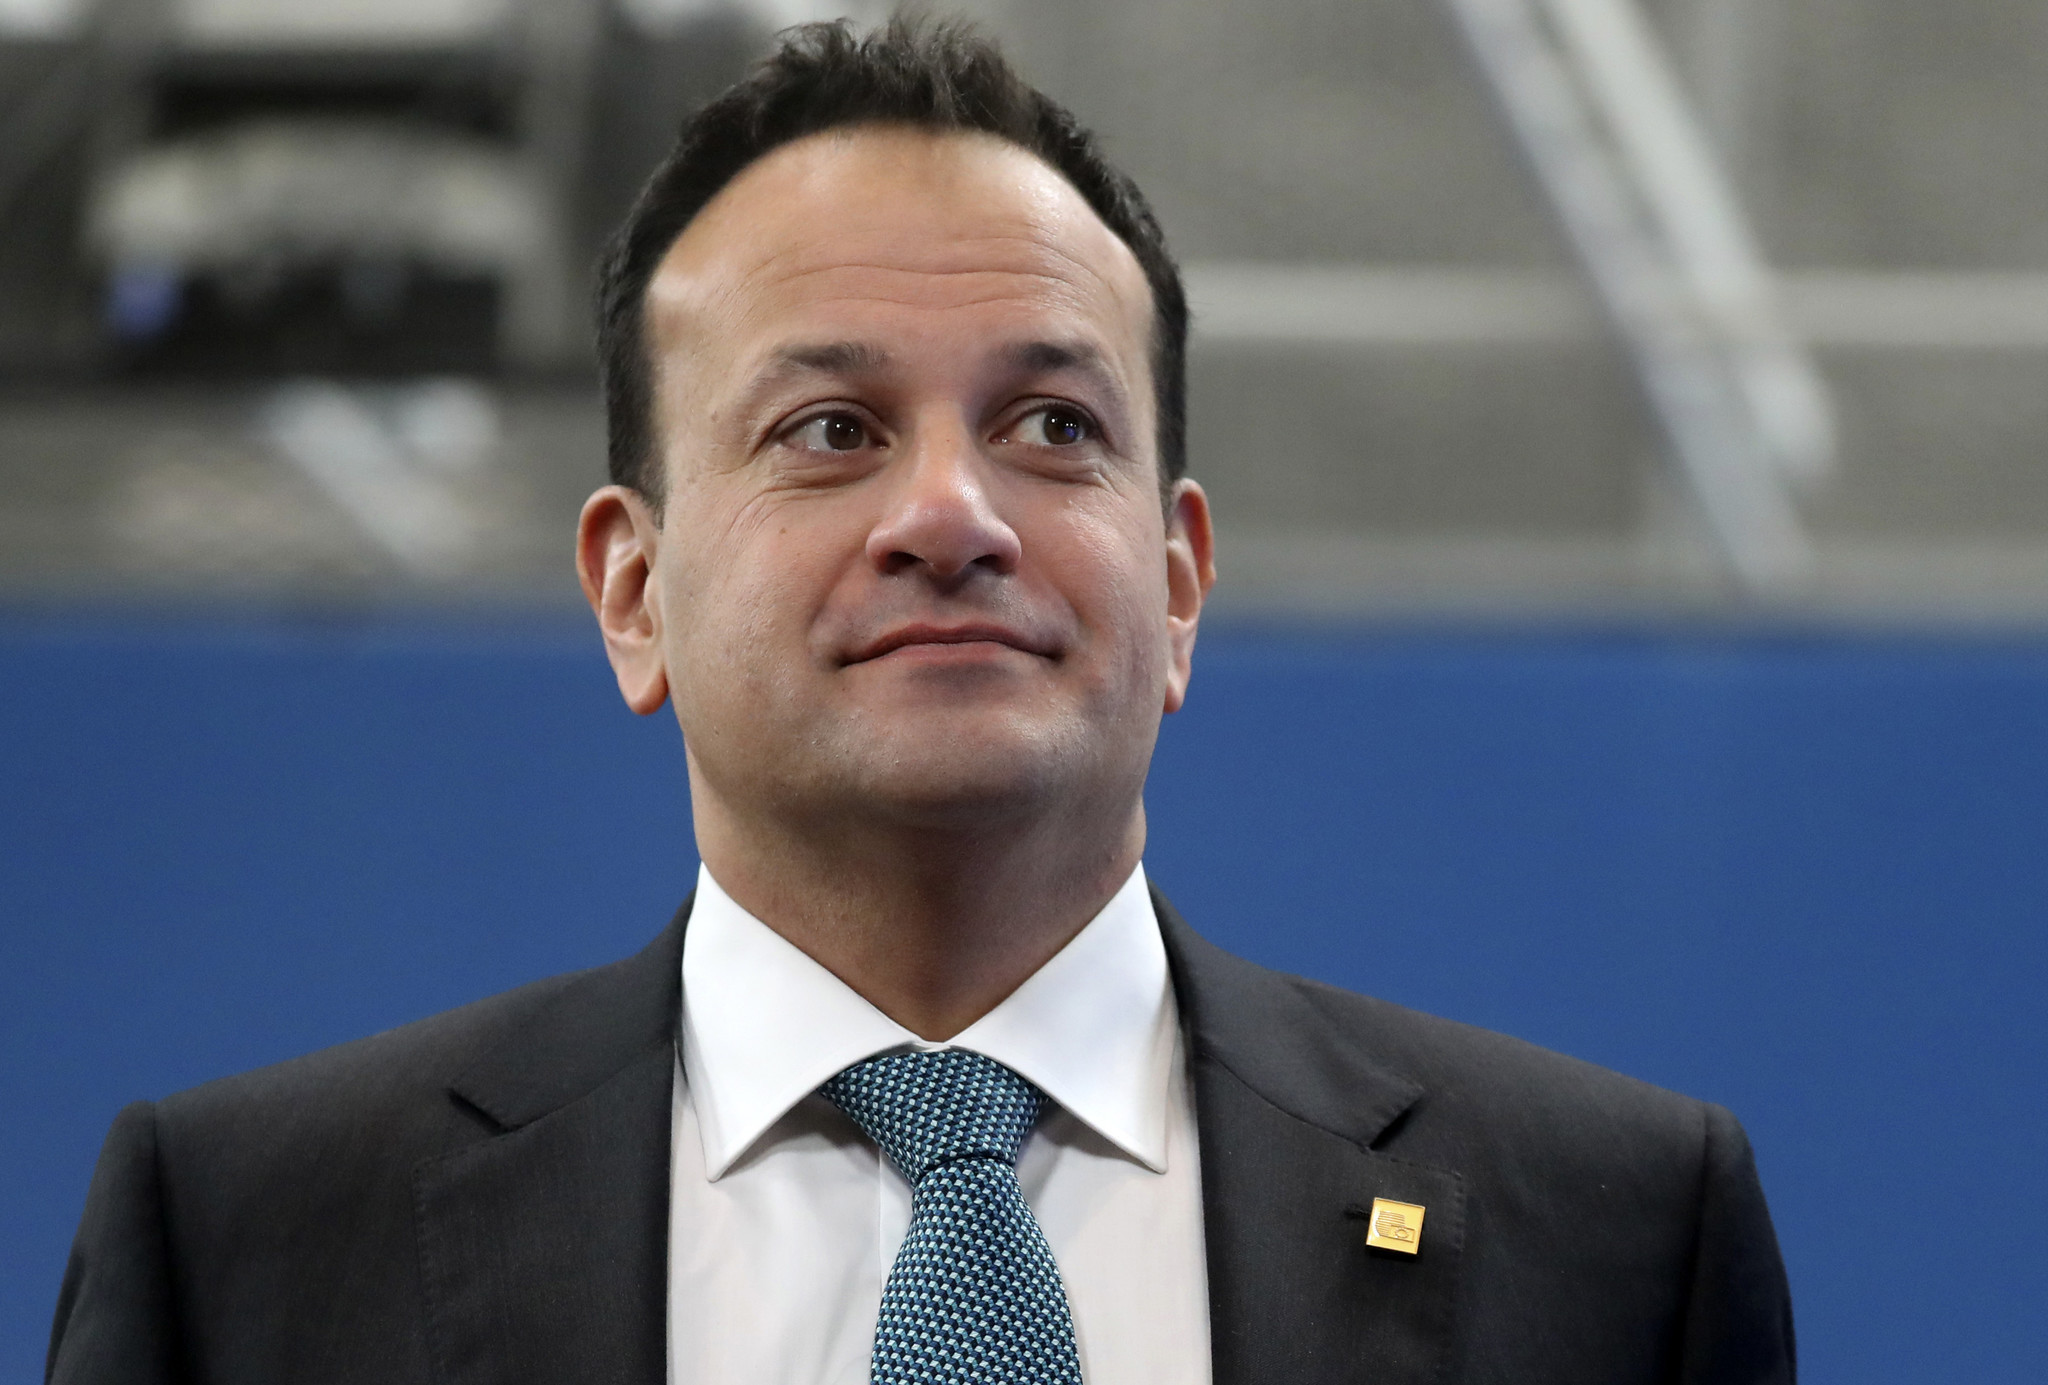 Leo Varadkar, Ireland's first openly gay prime minister, resigns after election setback